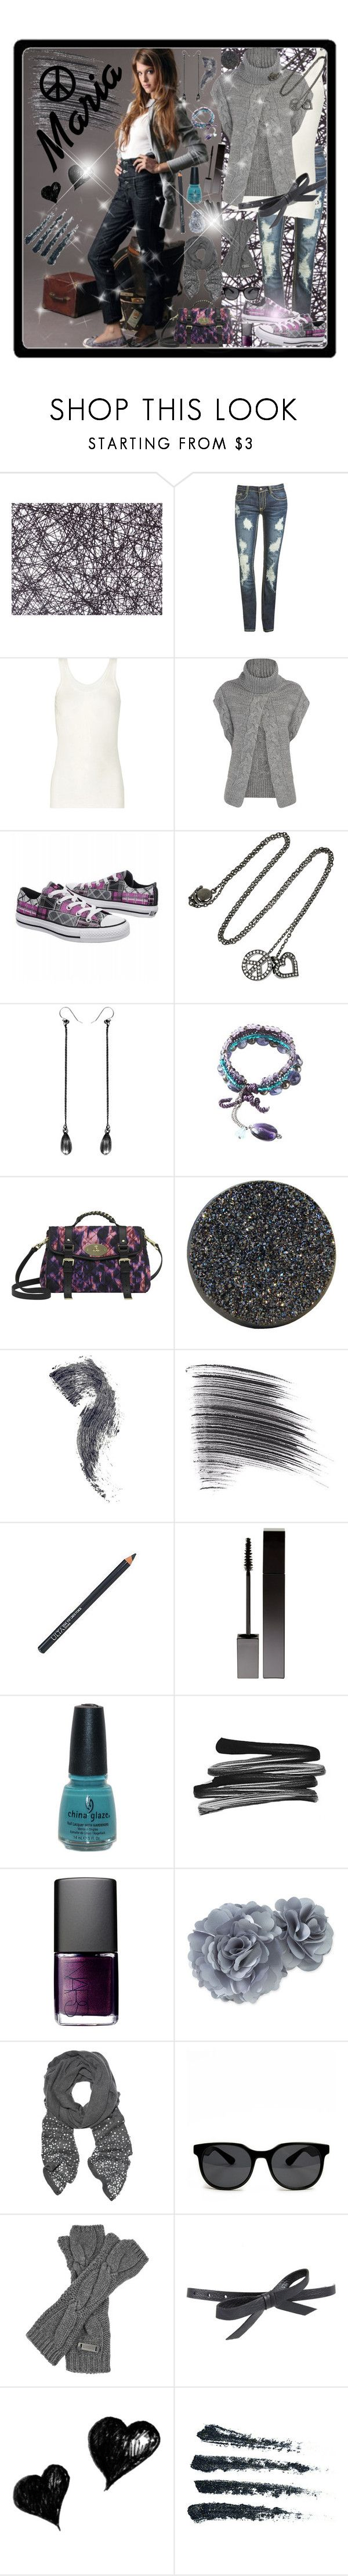 """""""Maria del Cerro :)<3"""" by andrej4e-xoxo ❤ liked on Polyvore featuring Moooi, Wet Seal, VPL, Dorothy Perkins, Converse, Solange Azagury-Partridge, Ann Demeulemeester, Promod, Paige Novick and Raven Denim"""